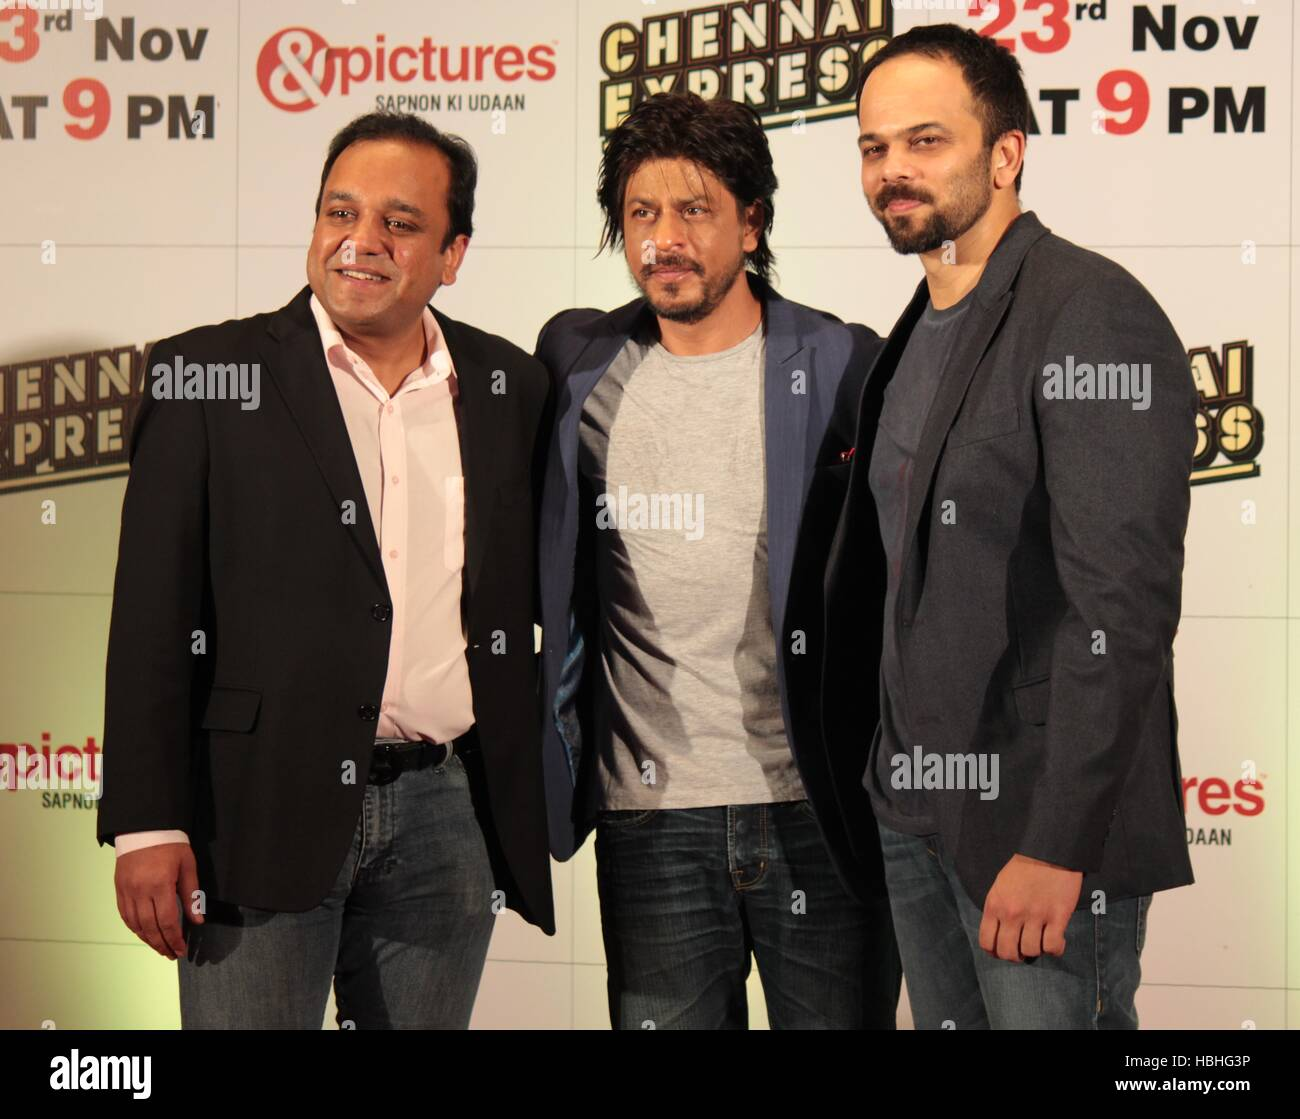 Punit Goenka Zee Entertainment Enterprises Limited Shah Rukh Khan Rohit Shetty Zee TV's party film Chennai Express Imagen De Stock